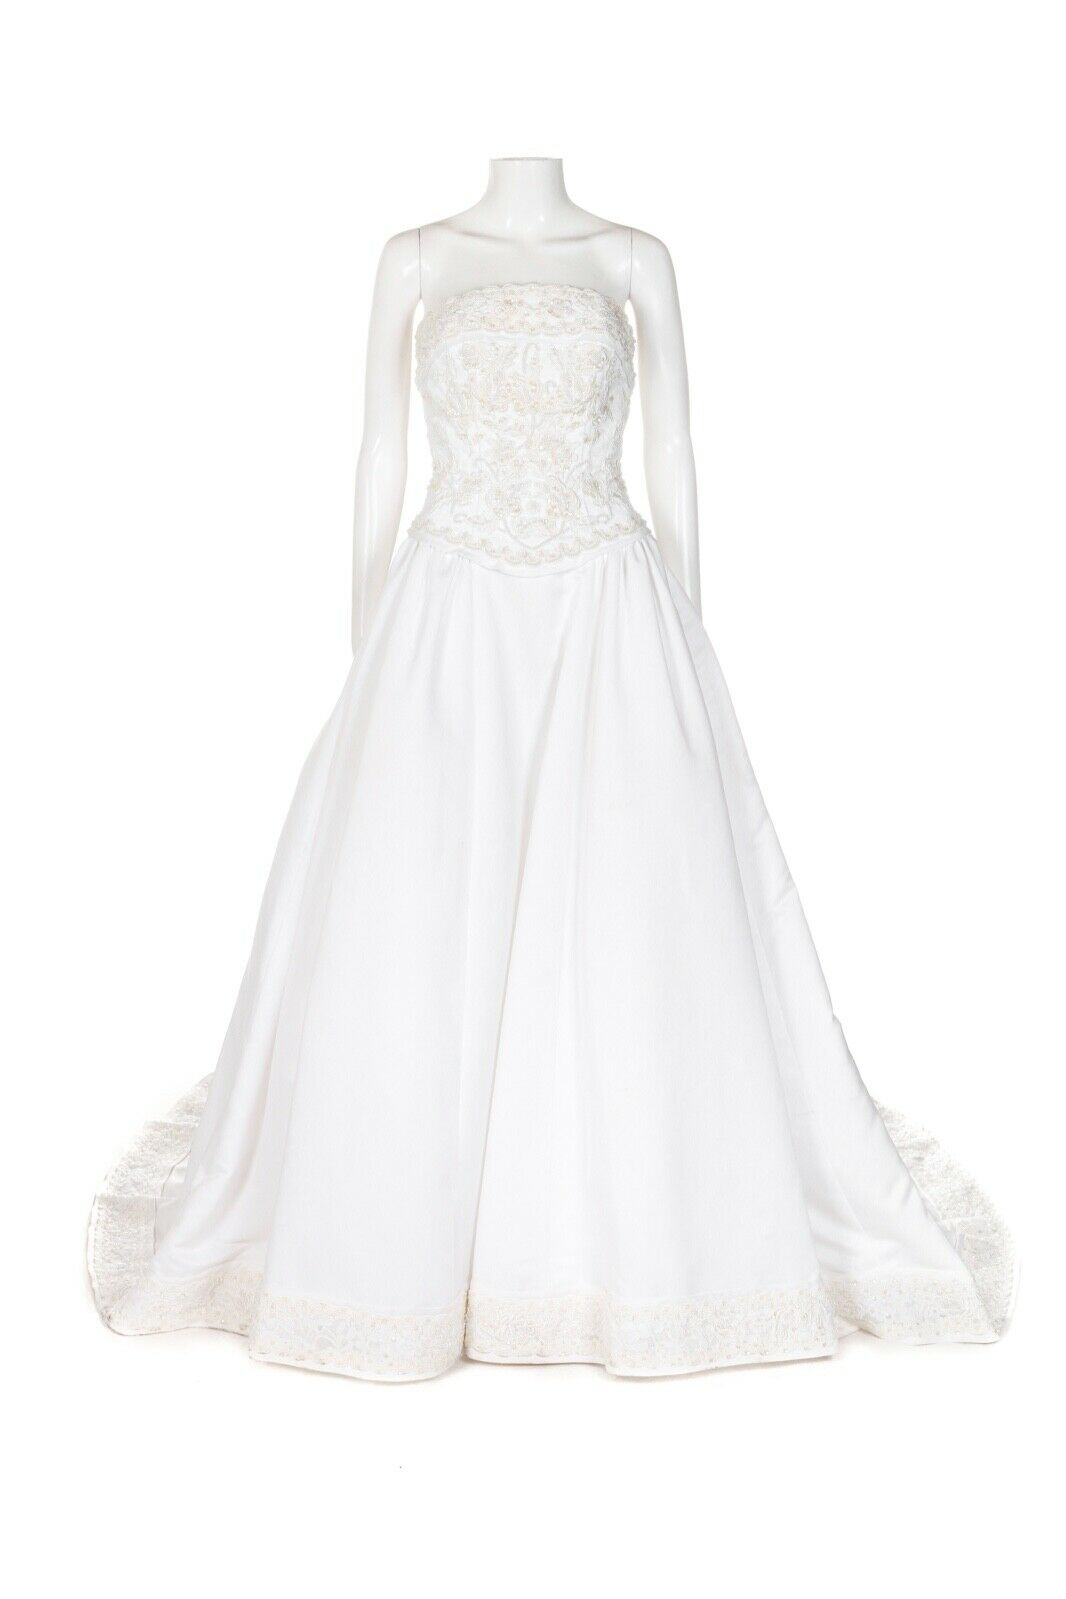 OLEG CASSINI White Beaded Wedding Dress 4 Corset Strapless Cathedral Train Gown